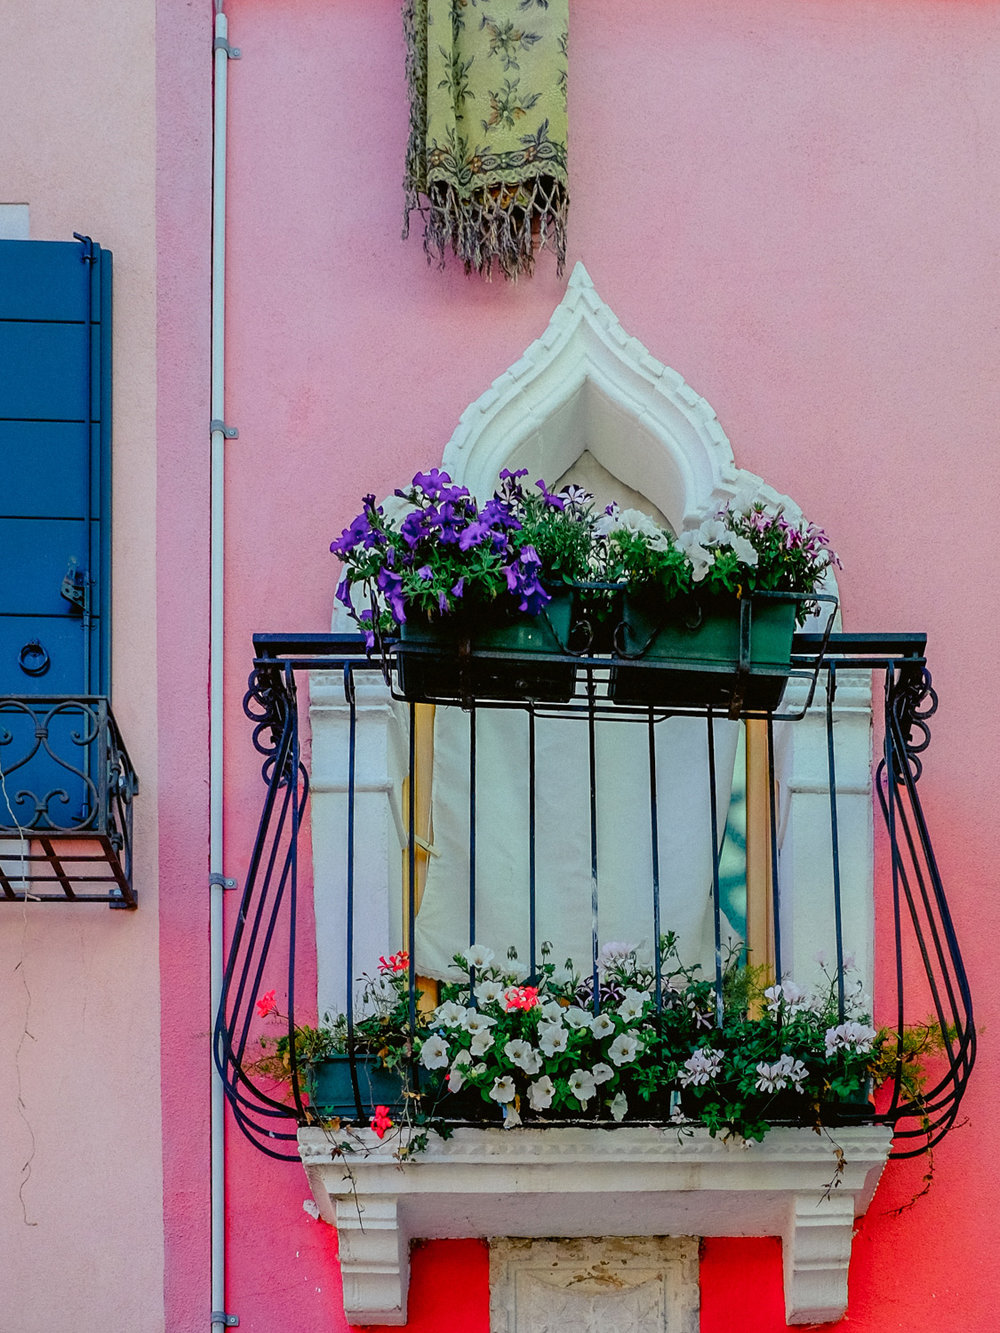 The Venetian island of Burano is the perfect destination for travel photographers.